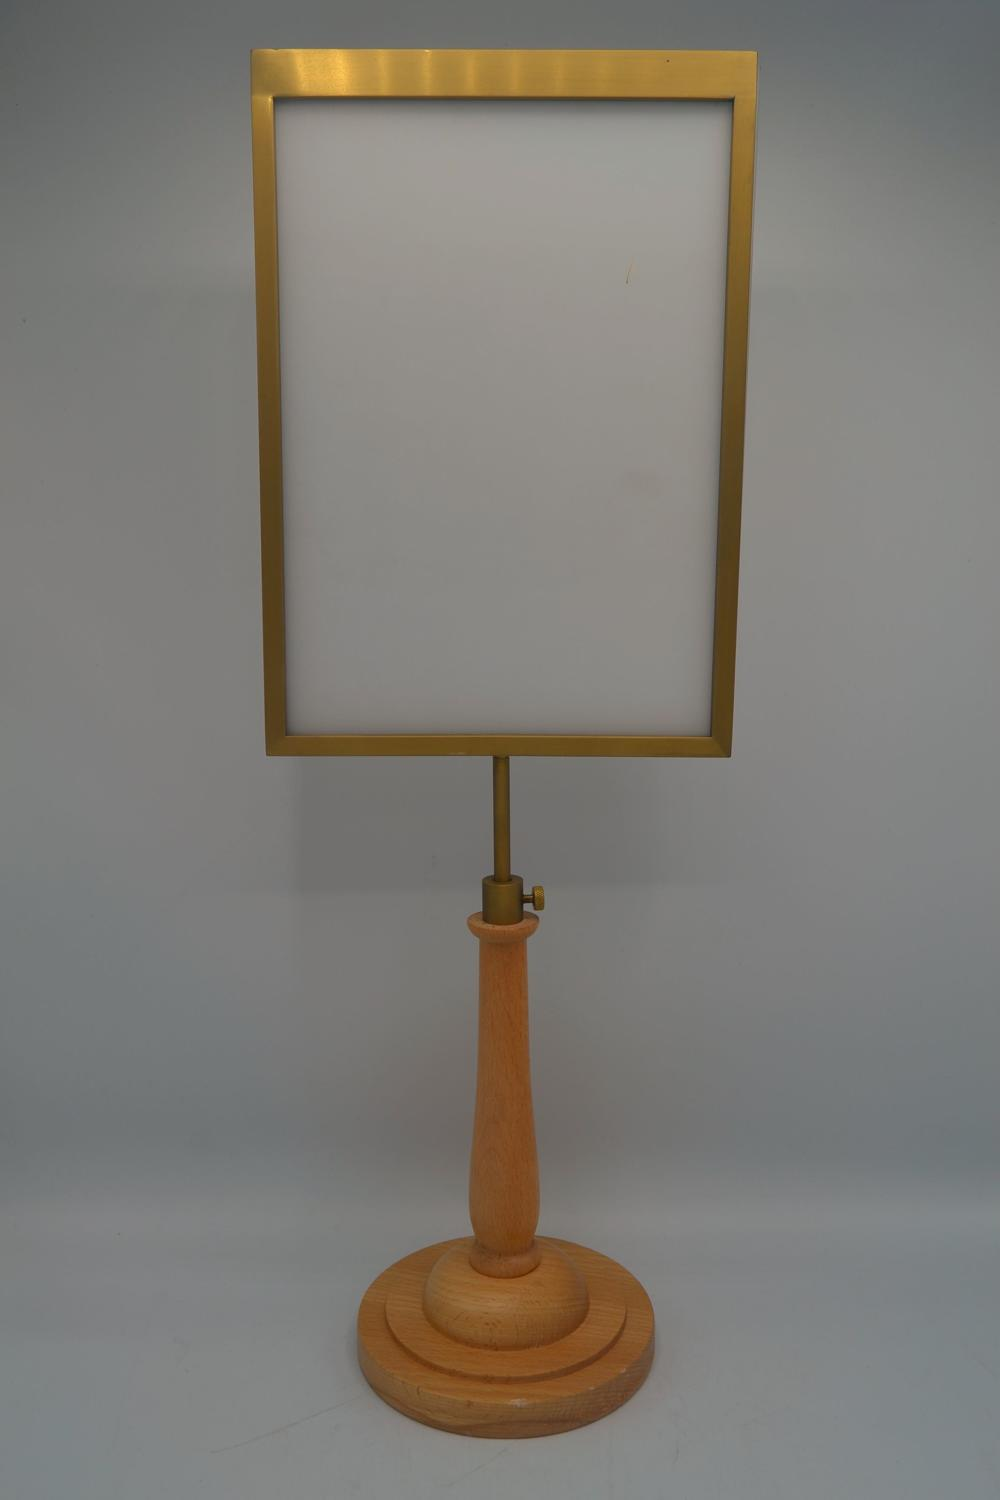 Brass Display Frame on Wooden Stand